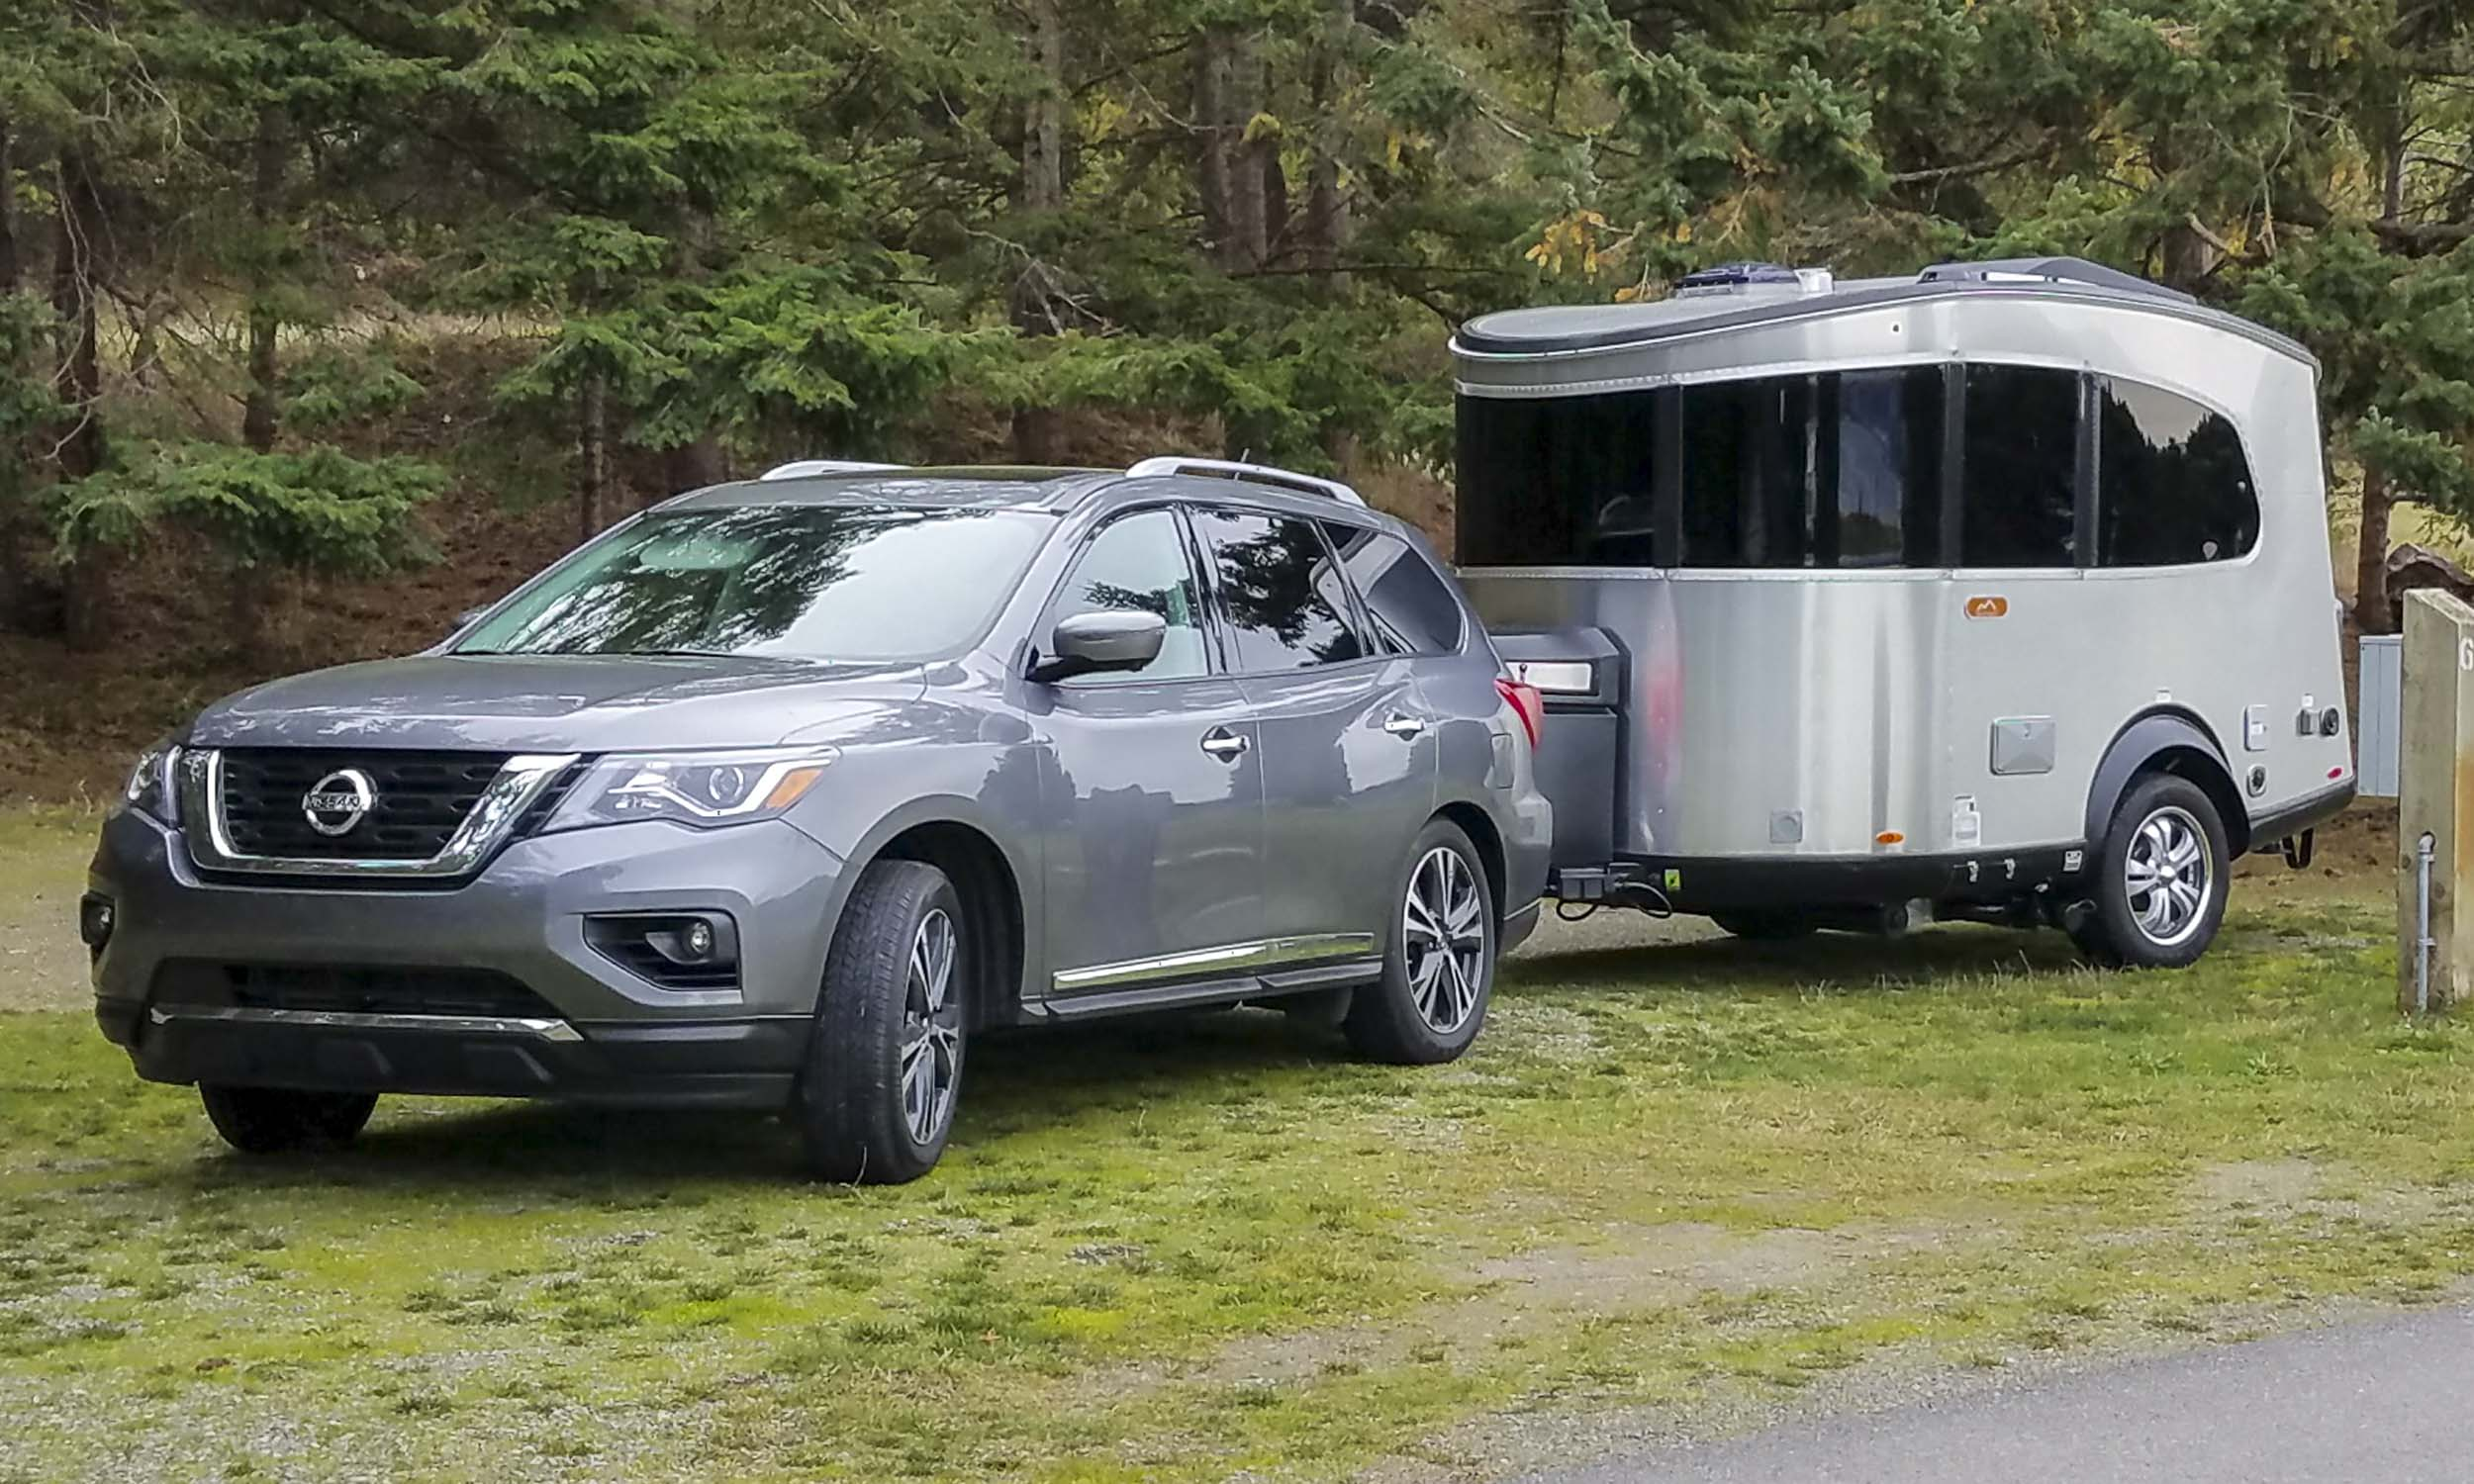 2017 Airstream Basecamp: Review